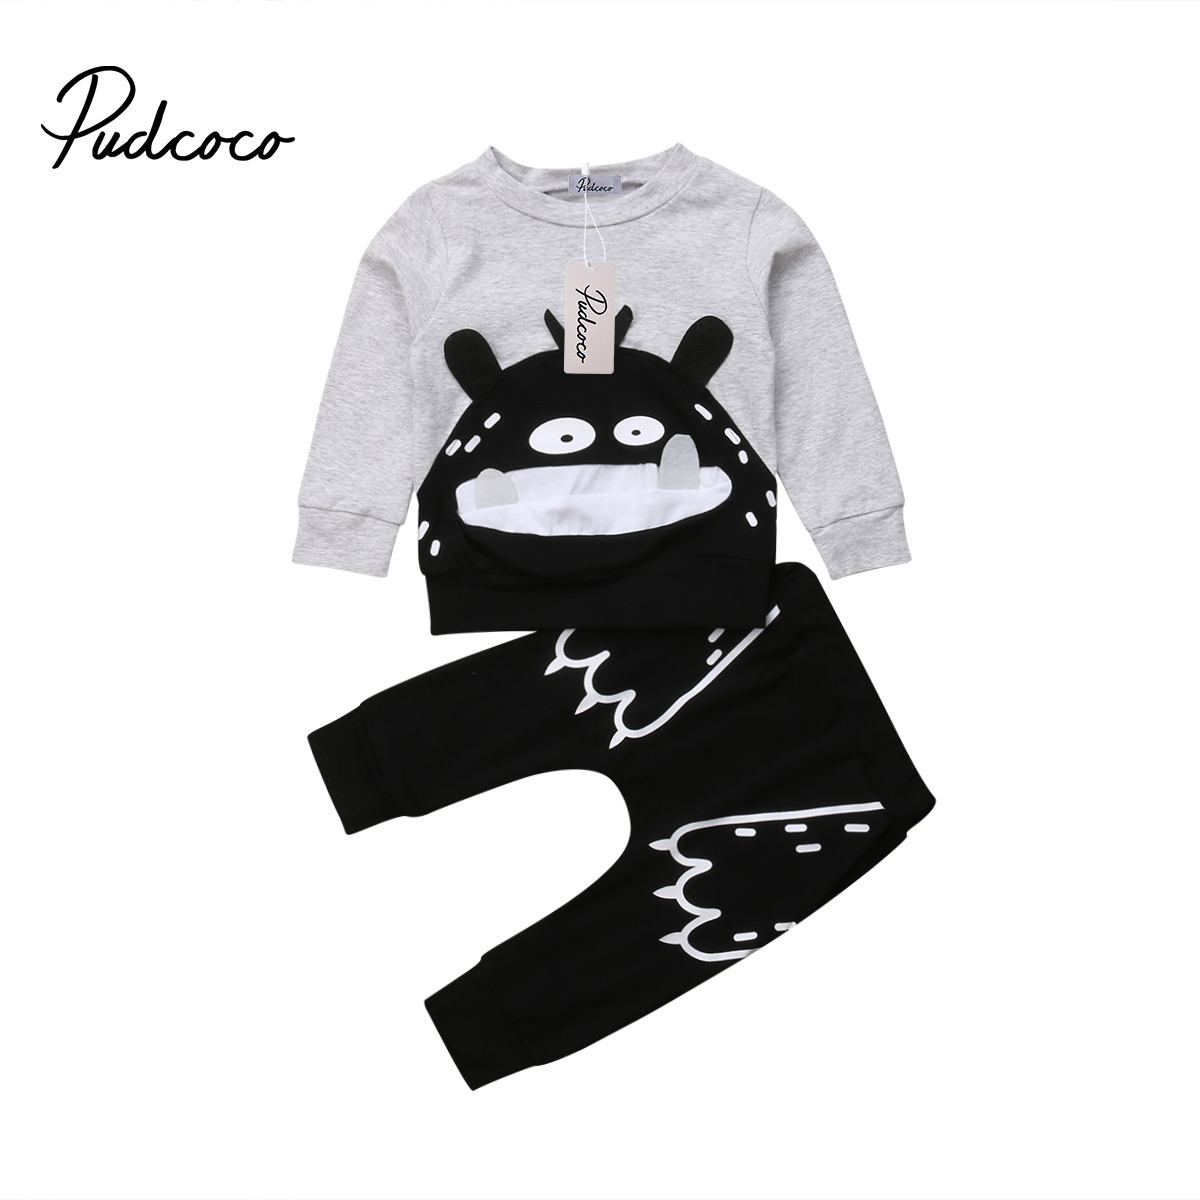 Pudcoco 2018 New Tollder Kid Baby Clothing Boy Girl Clothes Sweatshirt Tops Pants Infant Outfits Tracksuits novel features FX